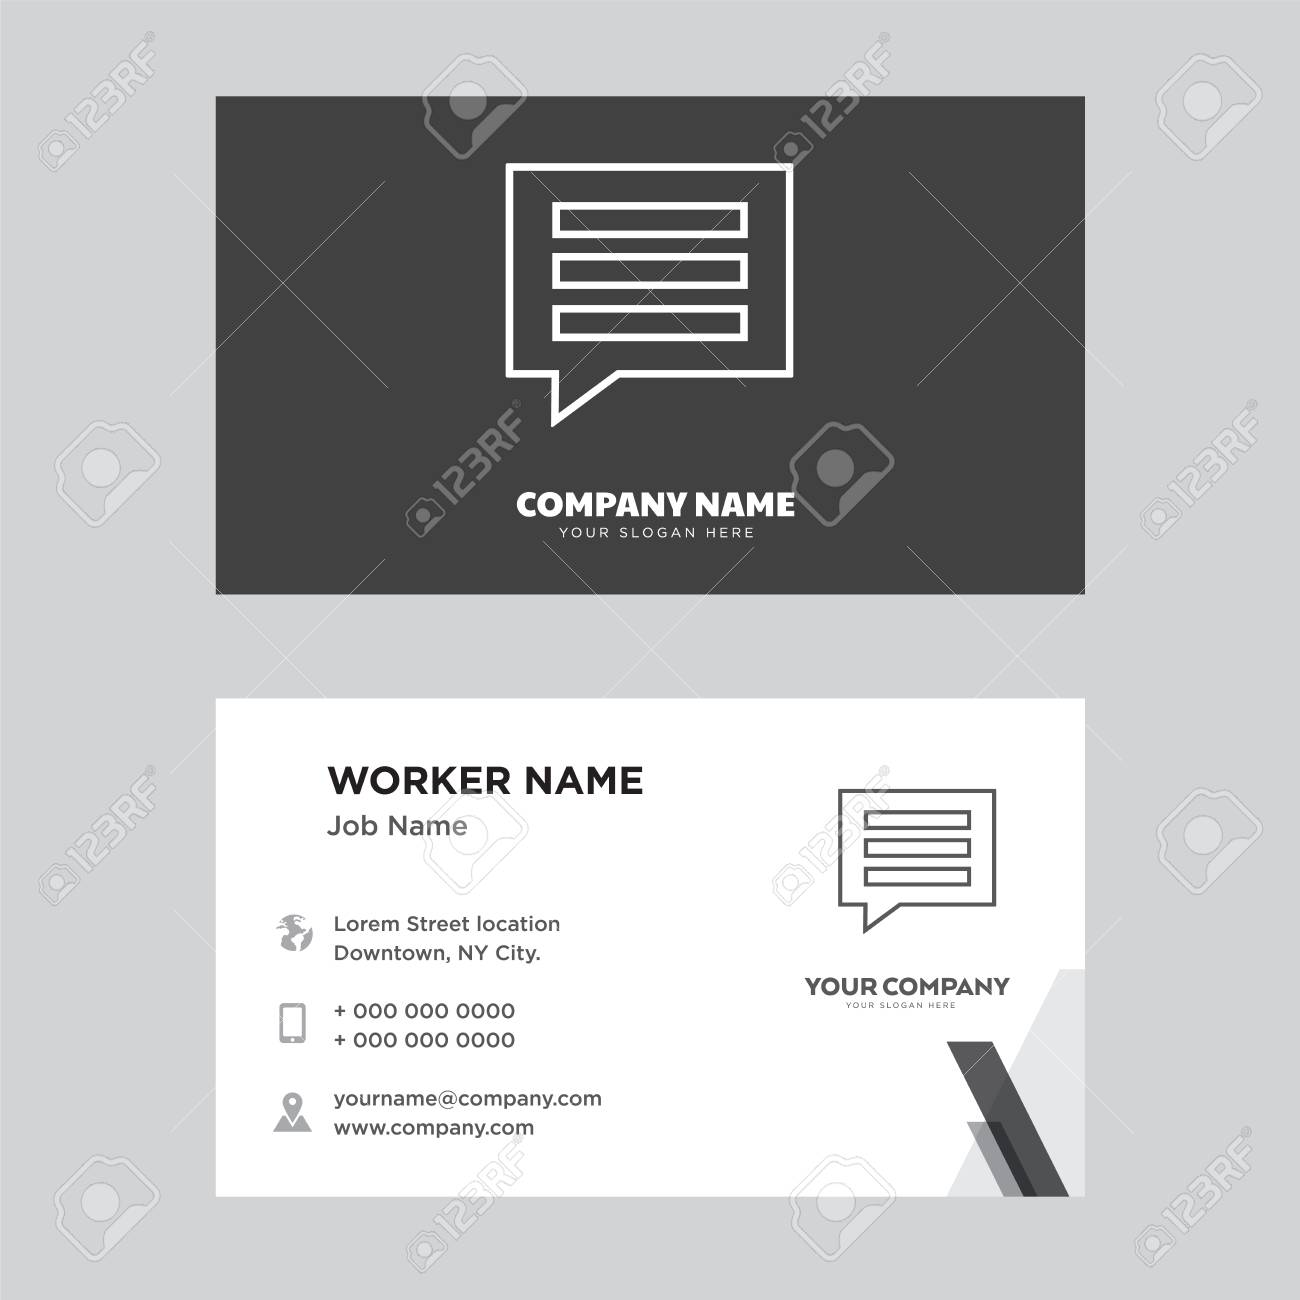 Comment business card design template visiting for your company comment business card design template visiting for your company modern creative and clean identity friedricerecipe Image collections